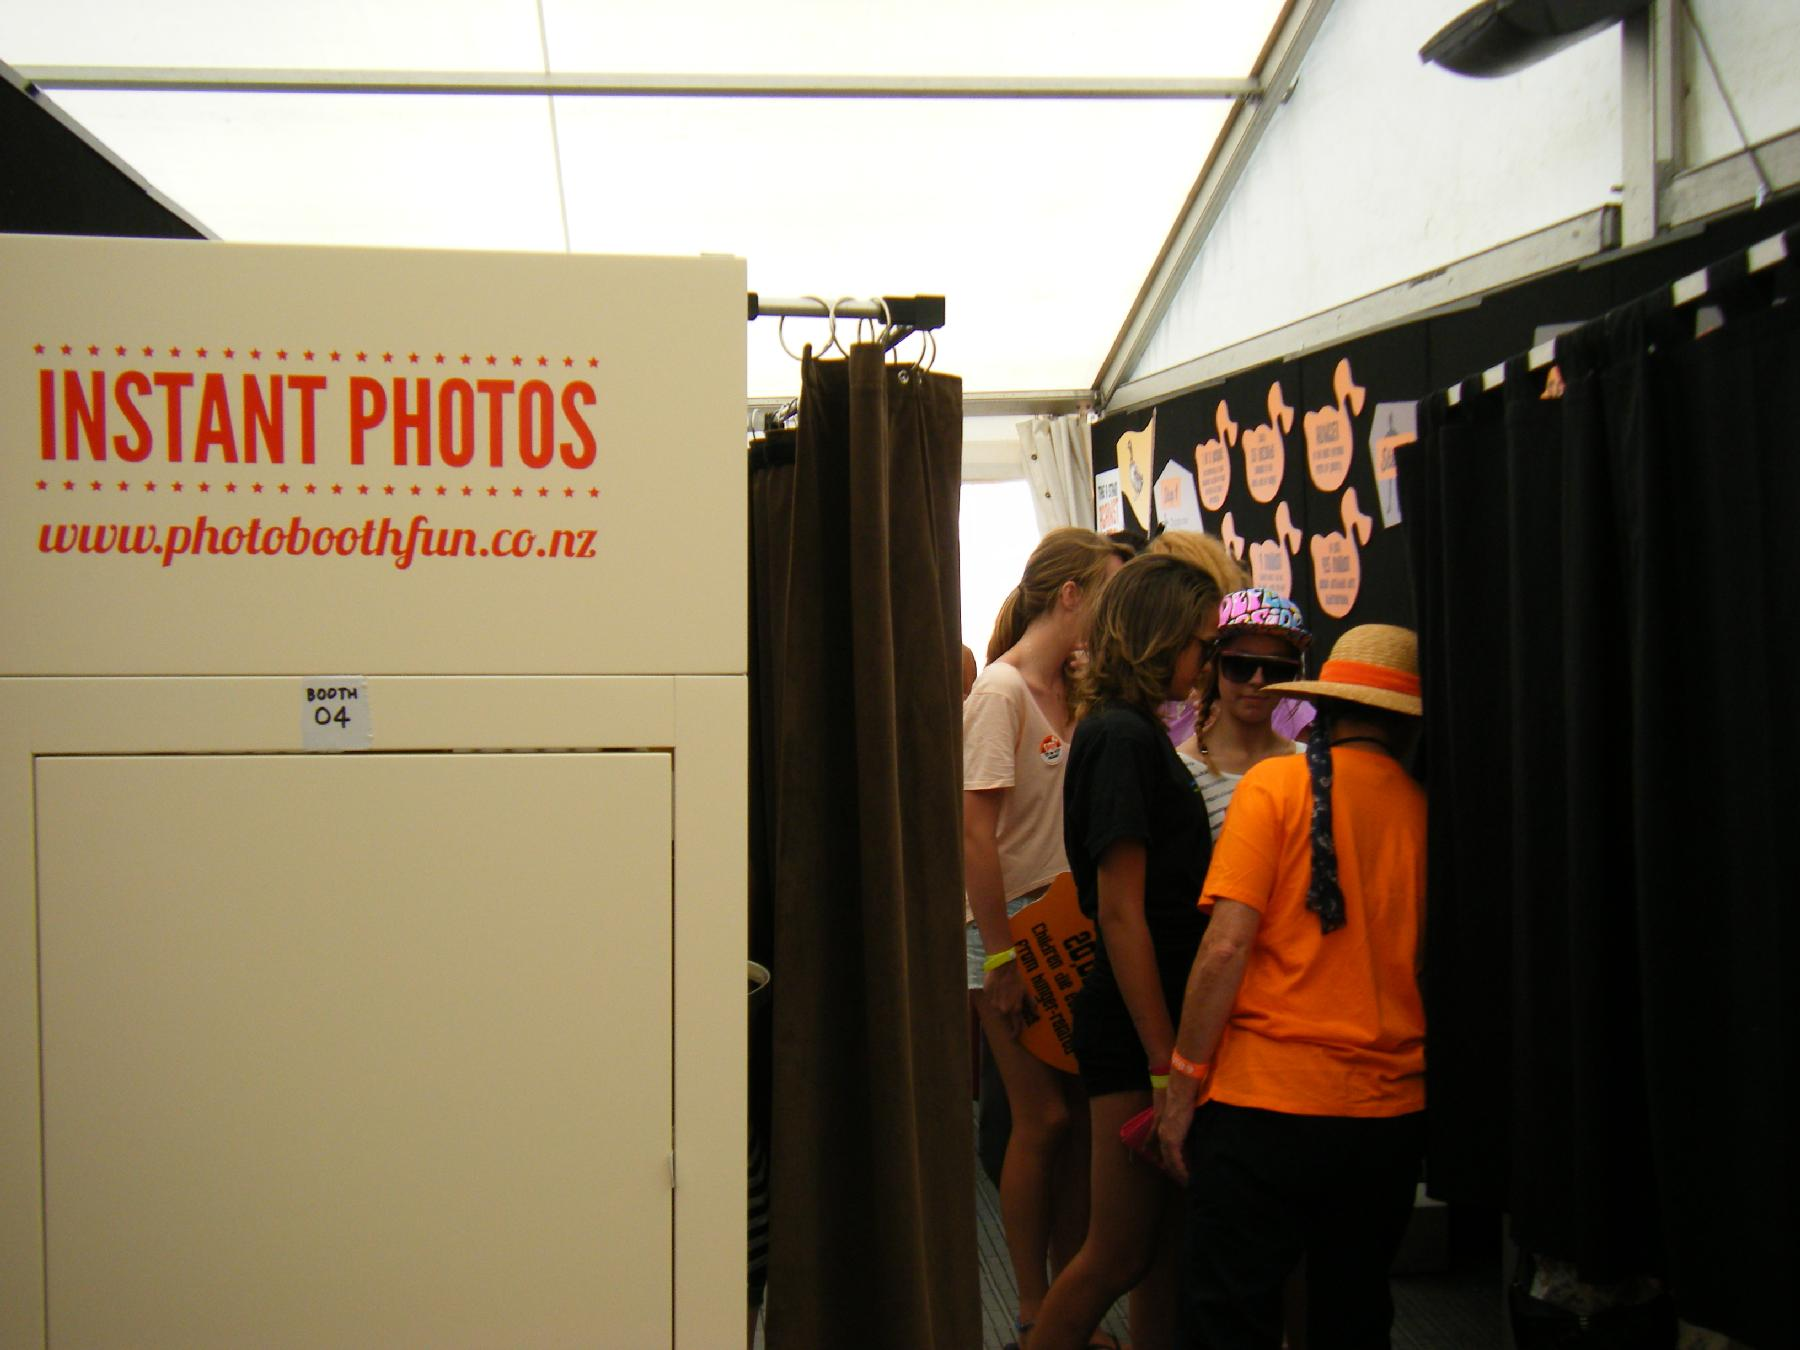 Photo Booth Fun - New Zealand's Photo Booth Hire Company